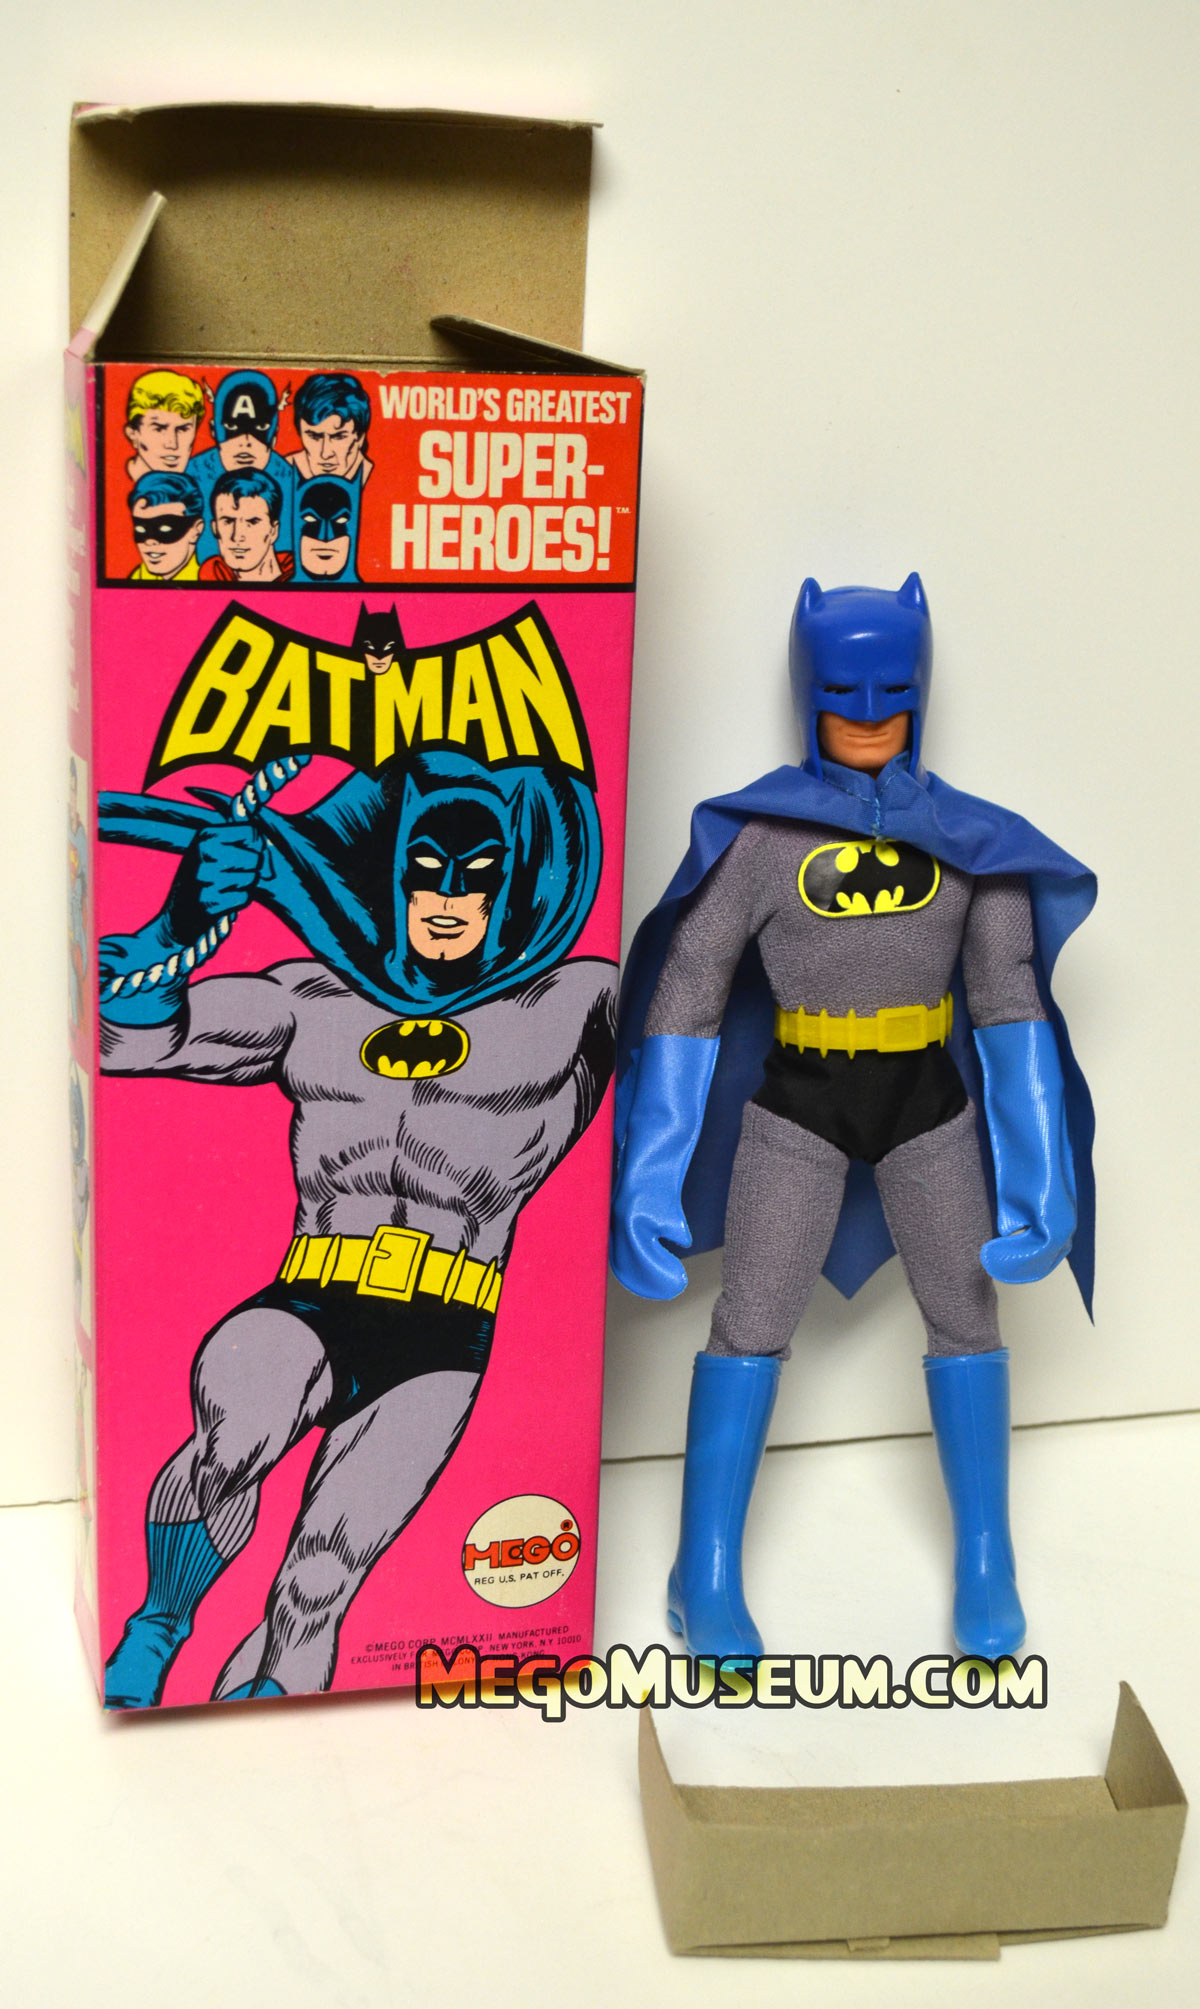 Mego Solid Boxed Batman (photo Courtesy of Mark Huckabone)